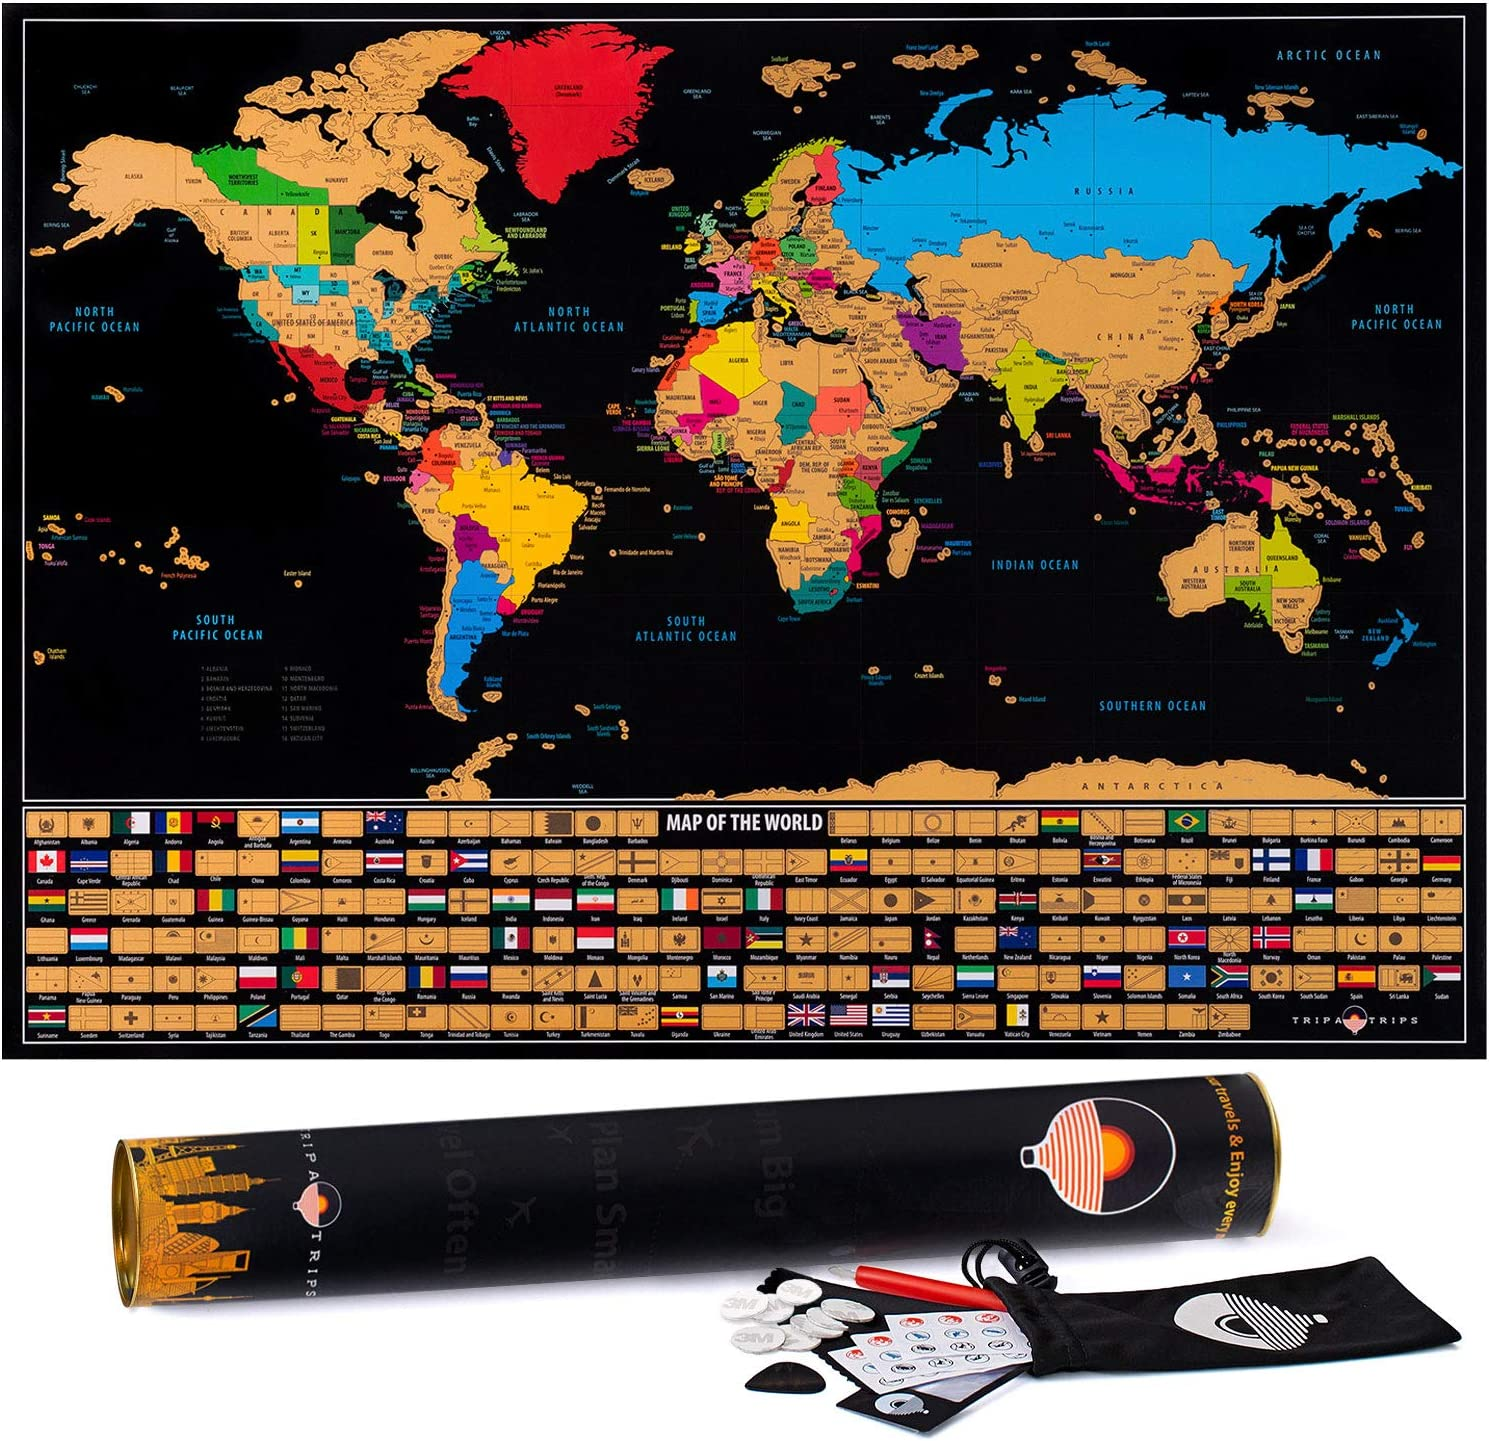 24 x 17 Easy to Frame Scratch Off World Map Wall Art Poster with US States /& Flags Scratch Off Map of The World with Flags Deluxe World Map Scratch Off Travel Map Designed for Travelers